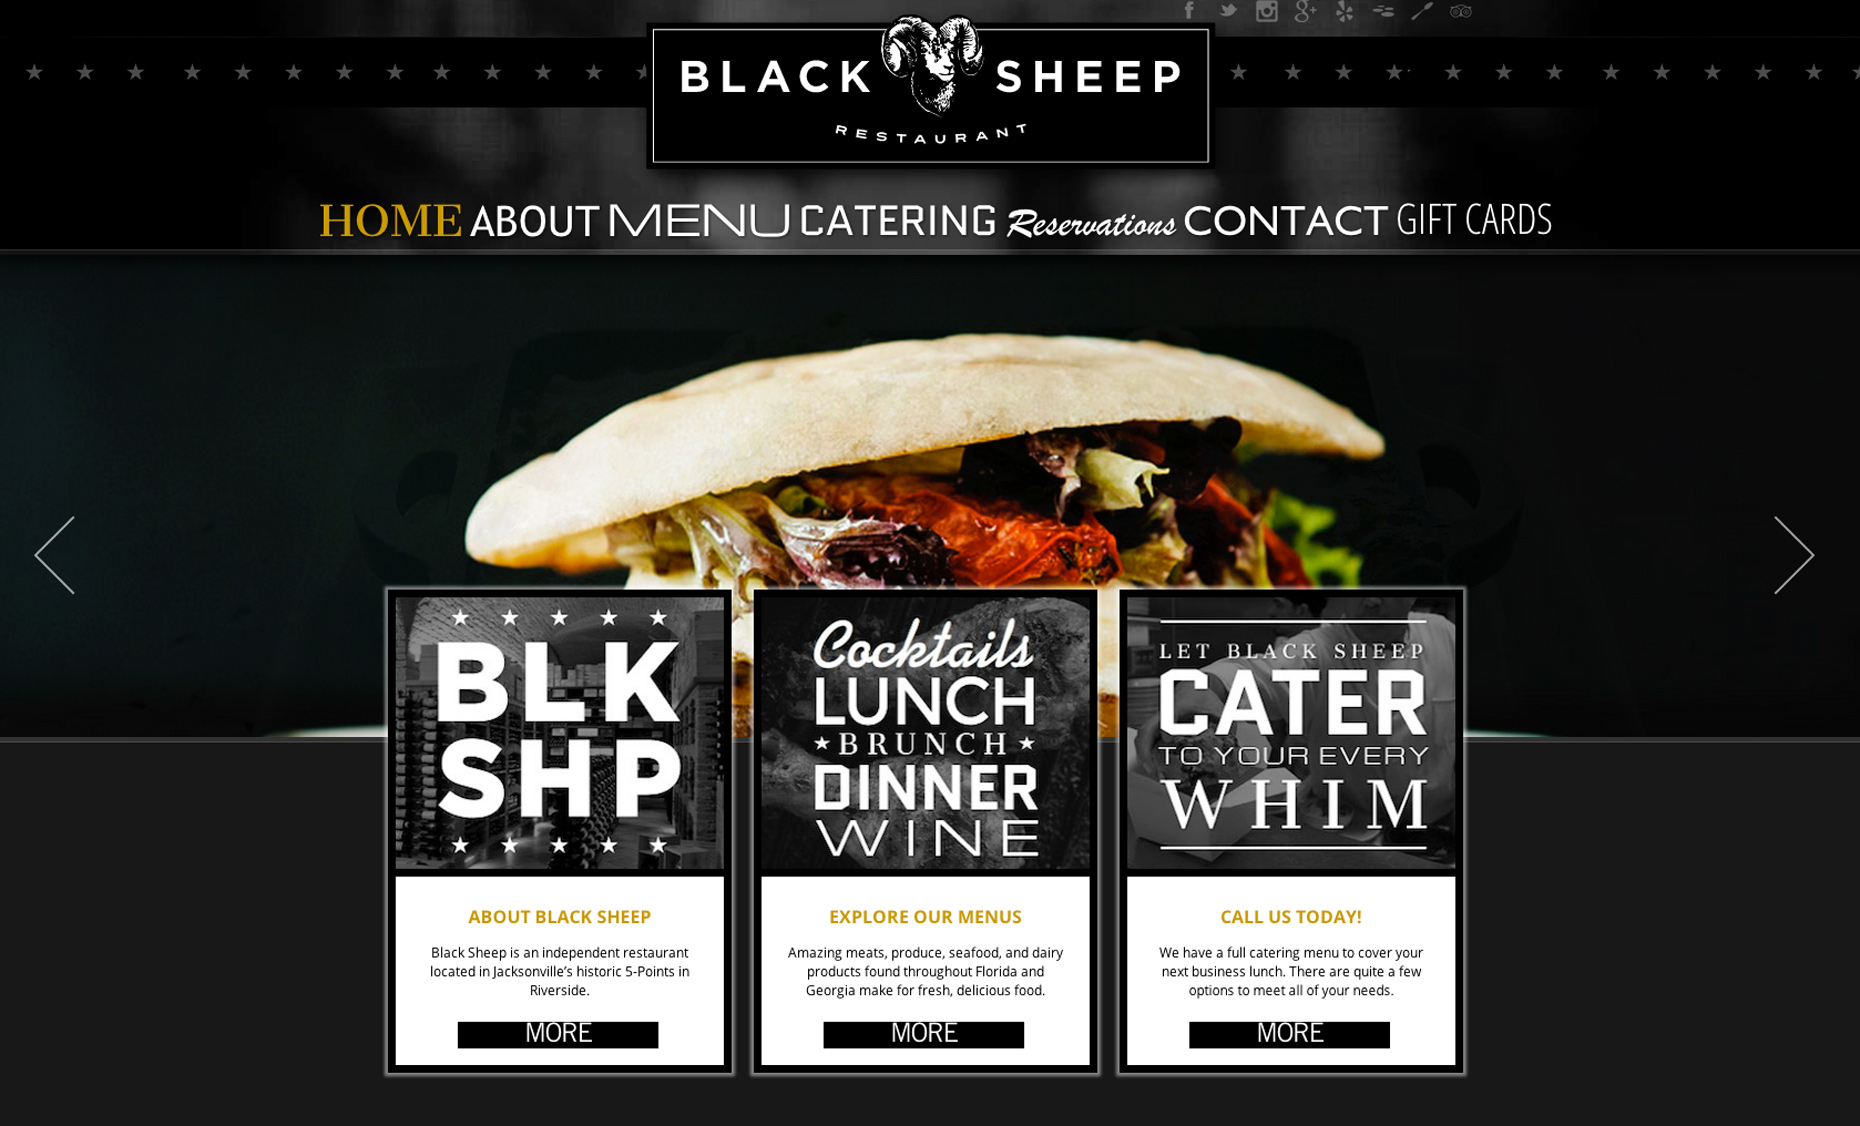 Editorial, Advertising and Corporate Studio Location Photography Jacksonville, Florida Black Sheep Restaurant Website Photography